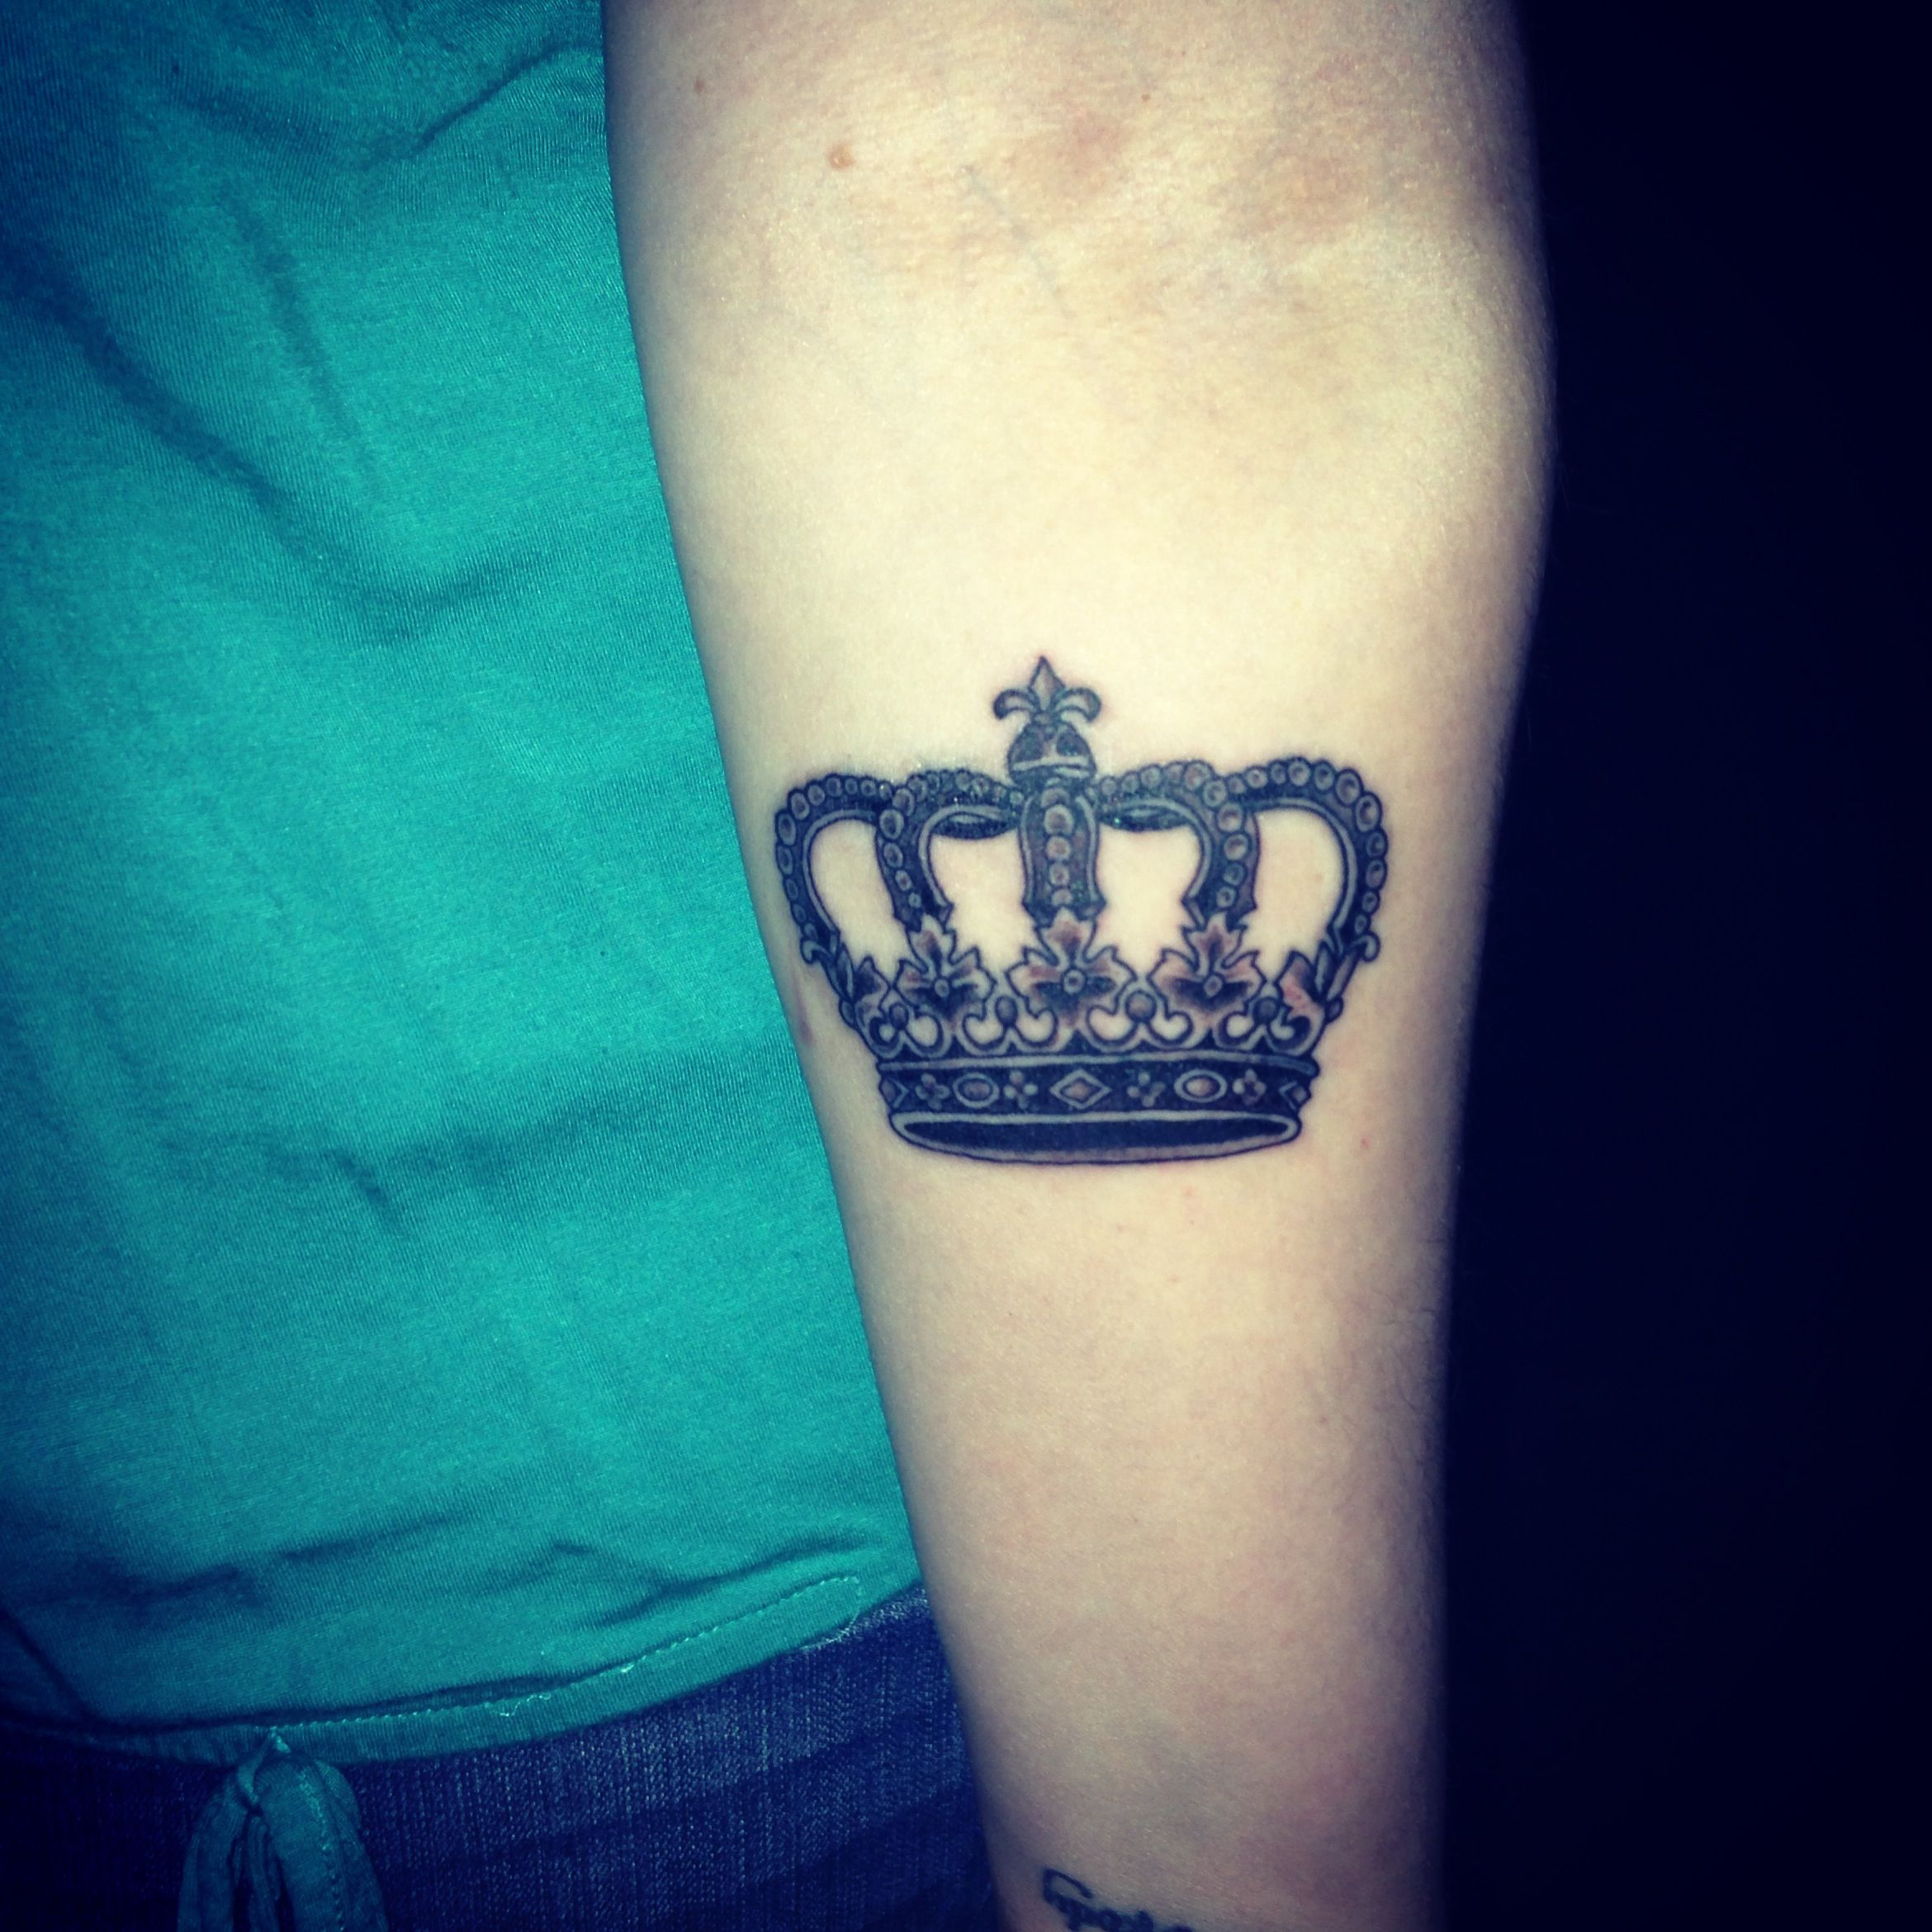 My newest tattoo.  I'm his queen!